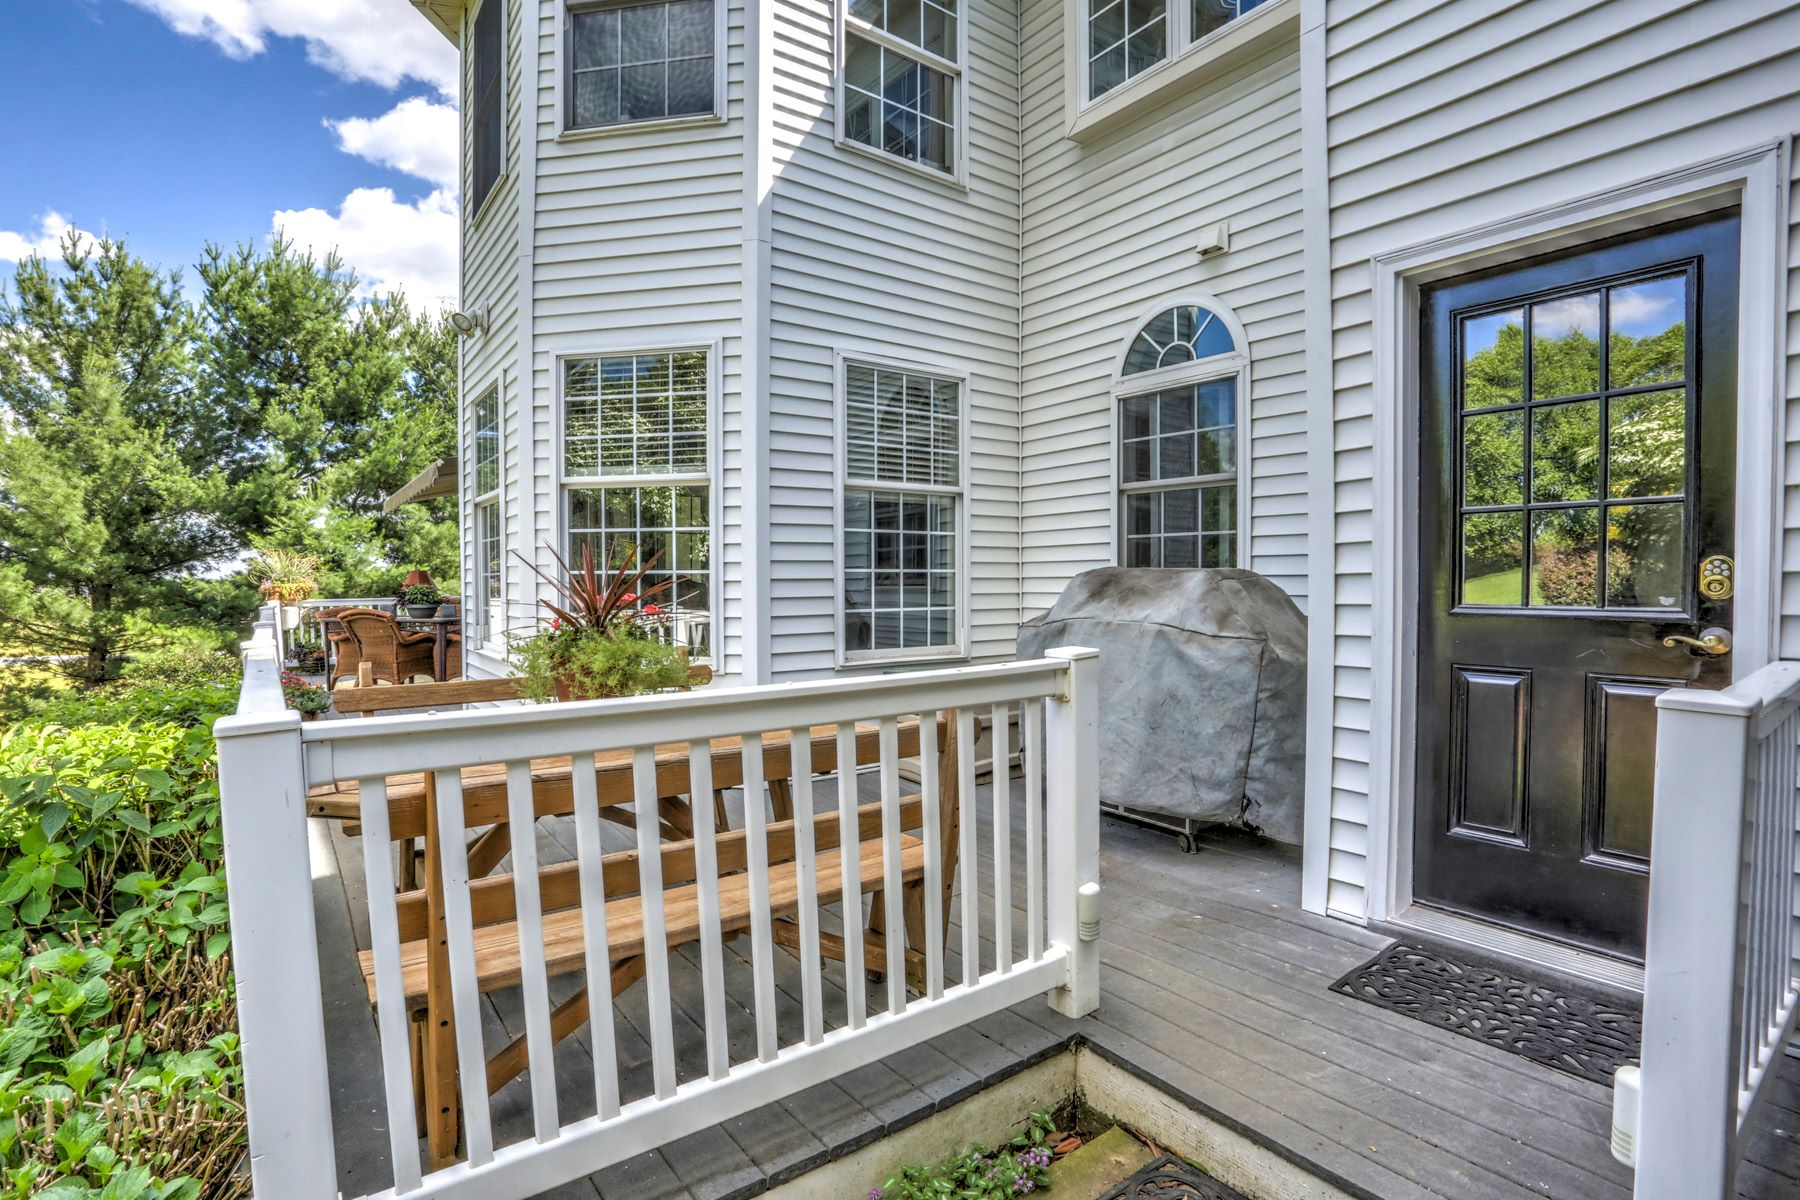 Additional photo for property listing at 195 W Millport Rd 195 W Millport Rd Lititz, Pennsylvania 17543 United States